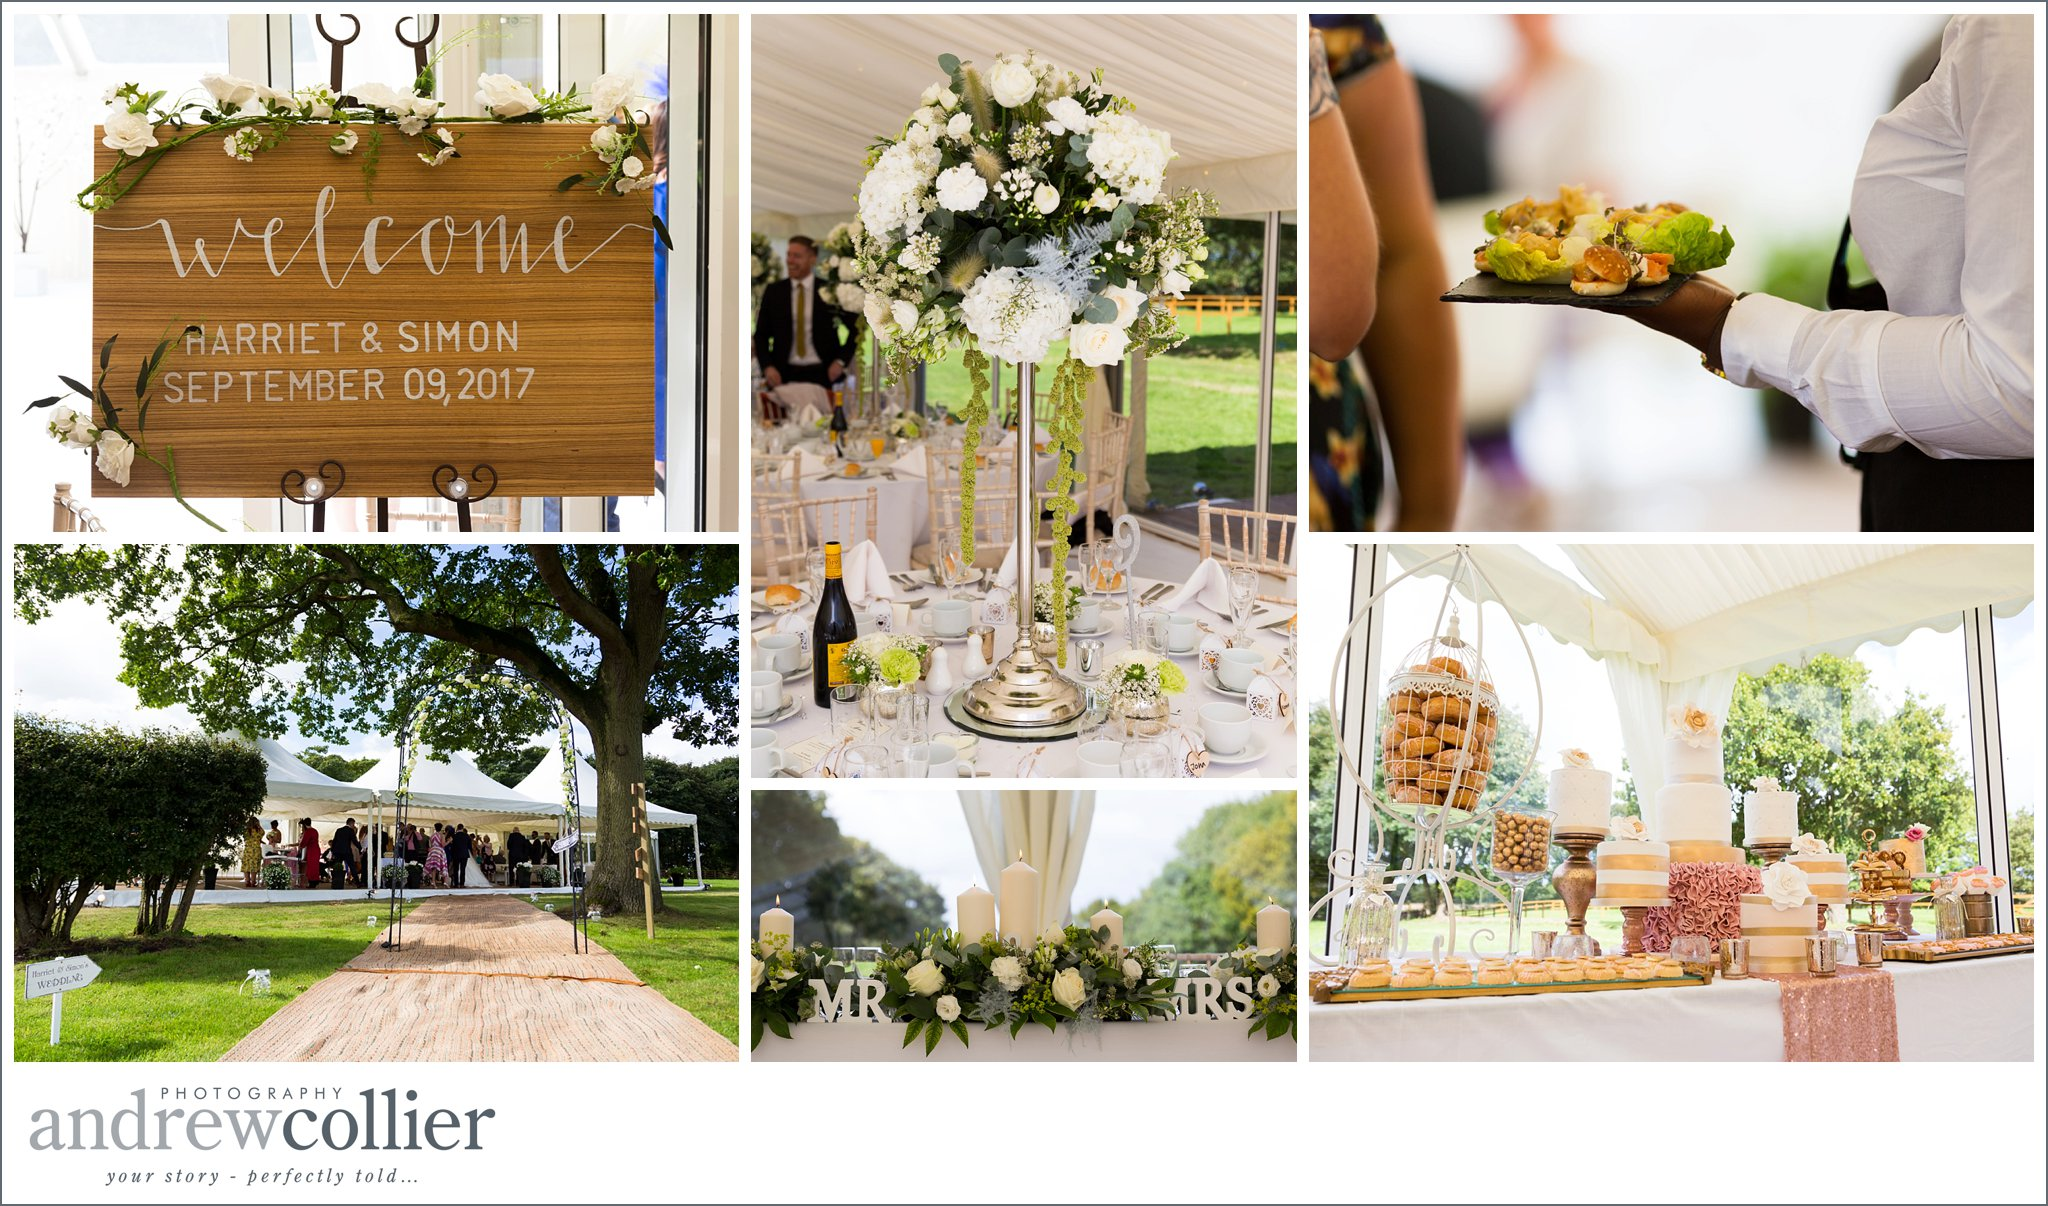 Capturing the details of your wedding - Andrew Collier Photography